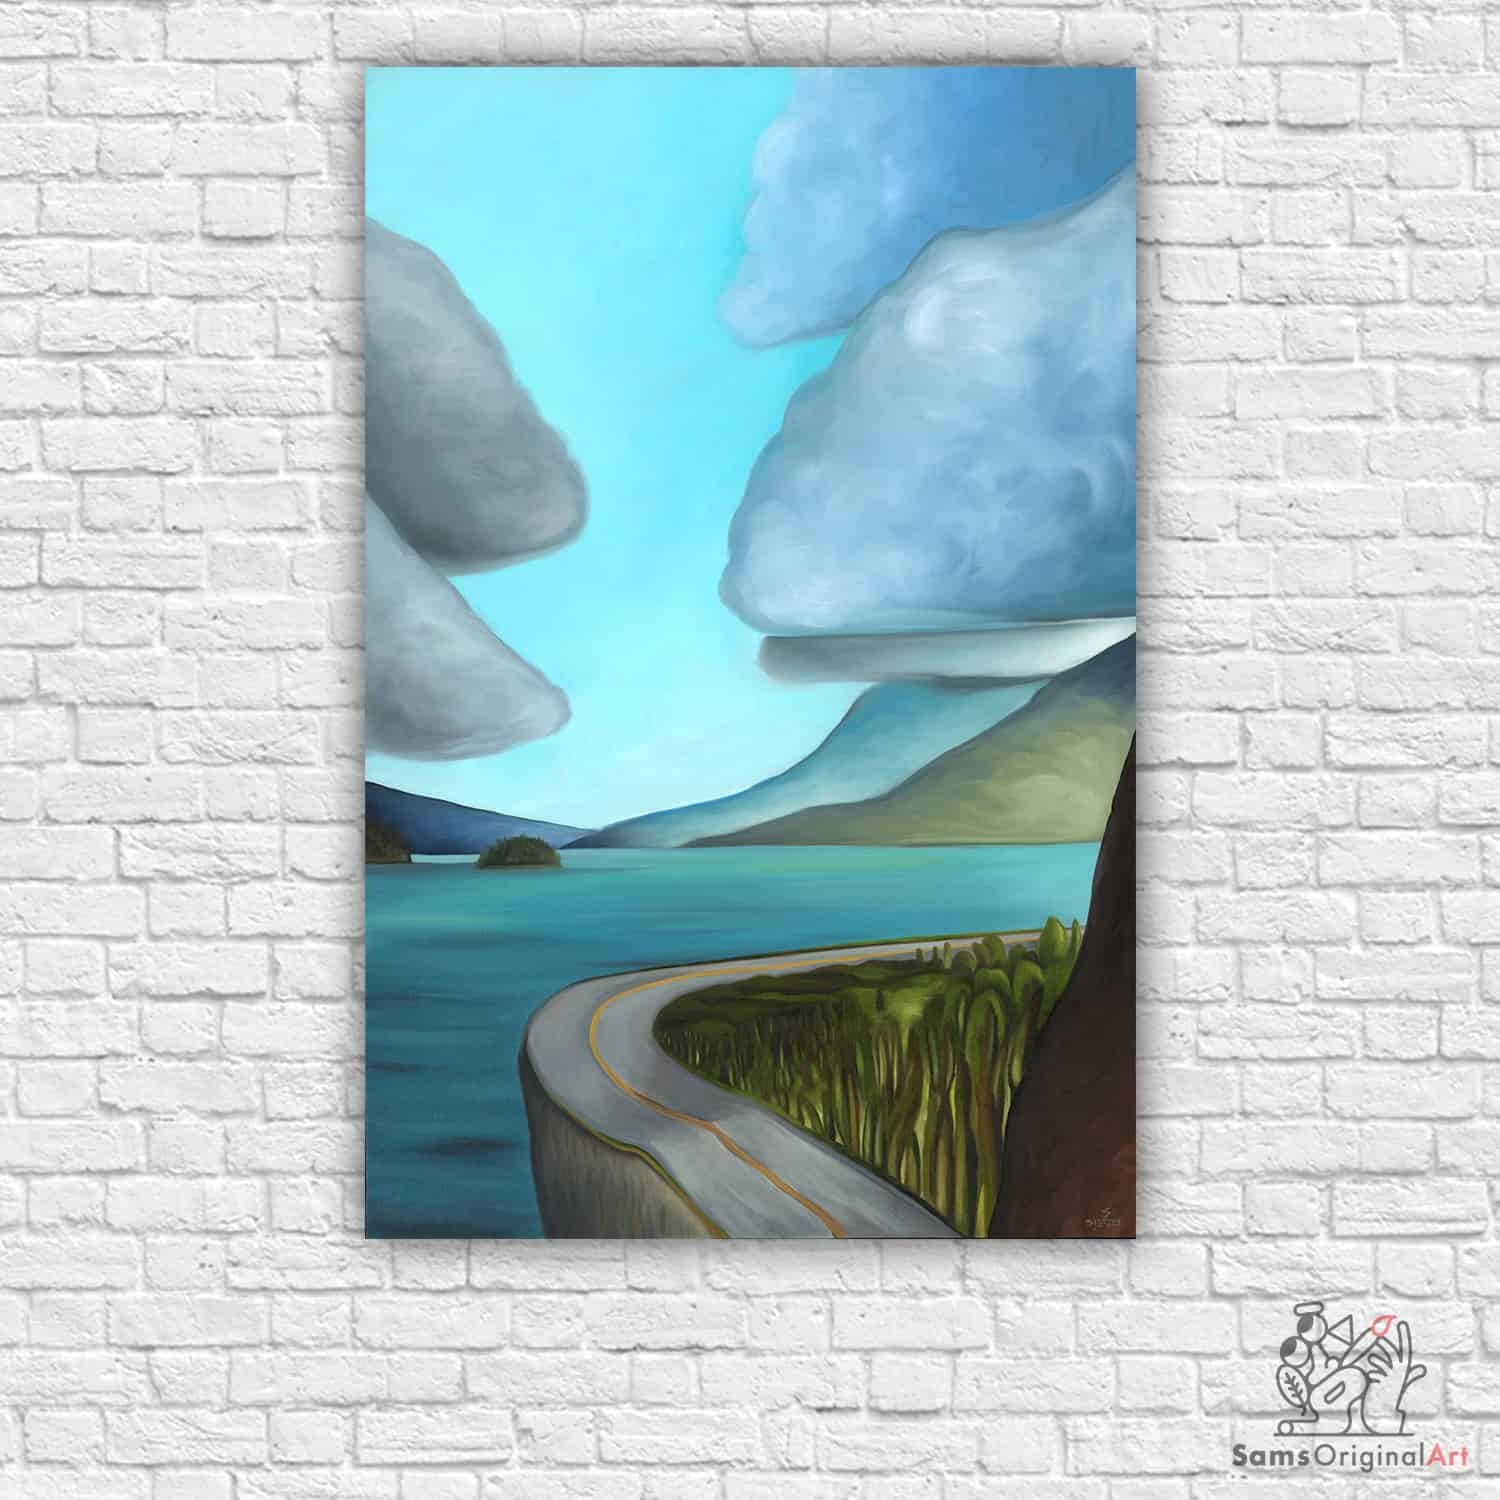 Local Vancouver paintings for sale